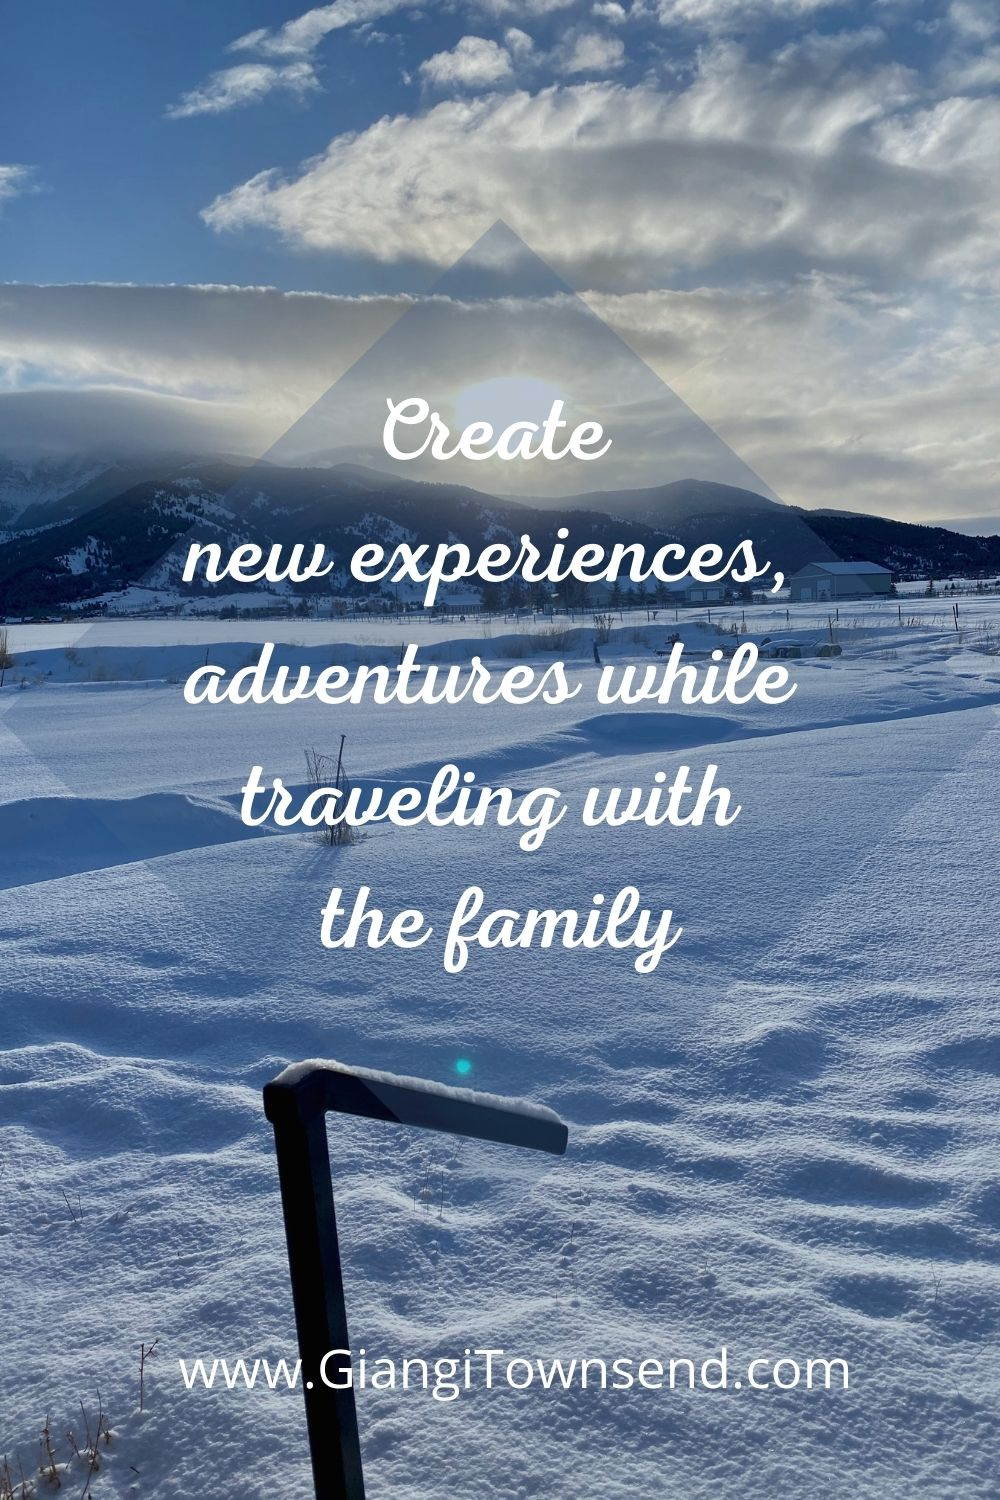 Create new experiences, adventures while traveling with the family